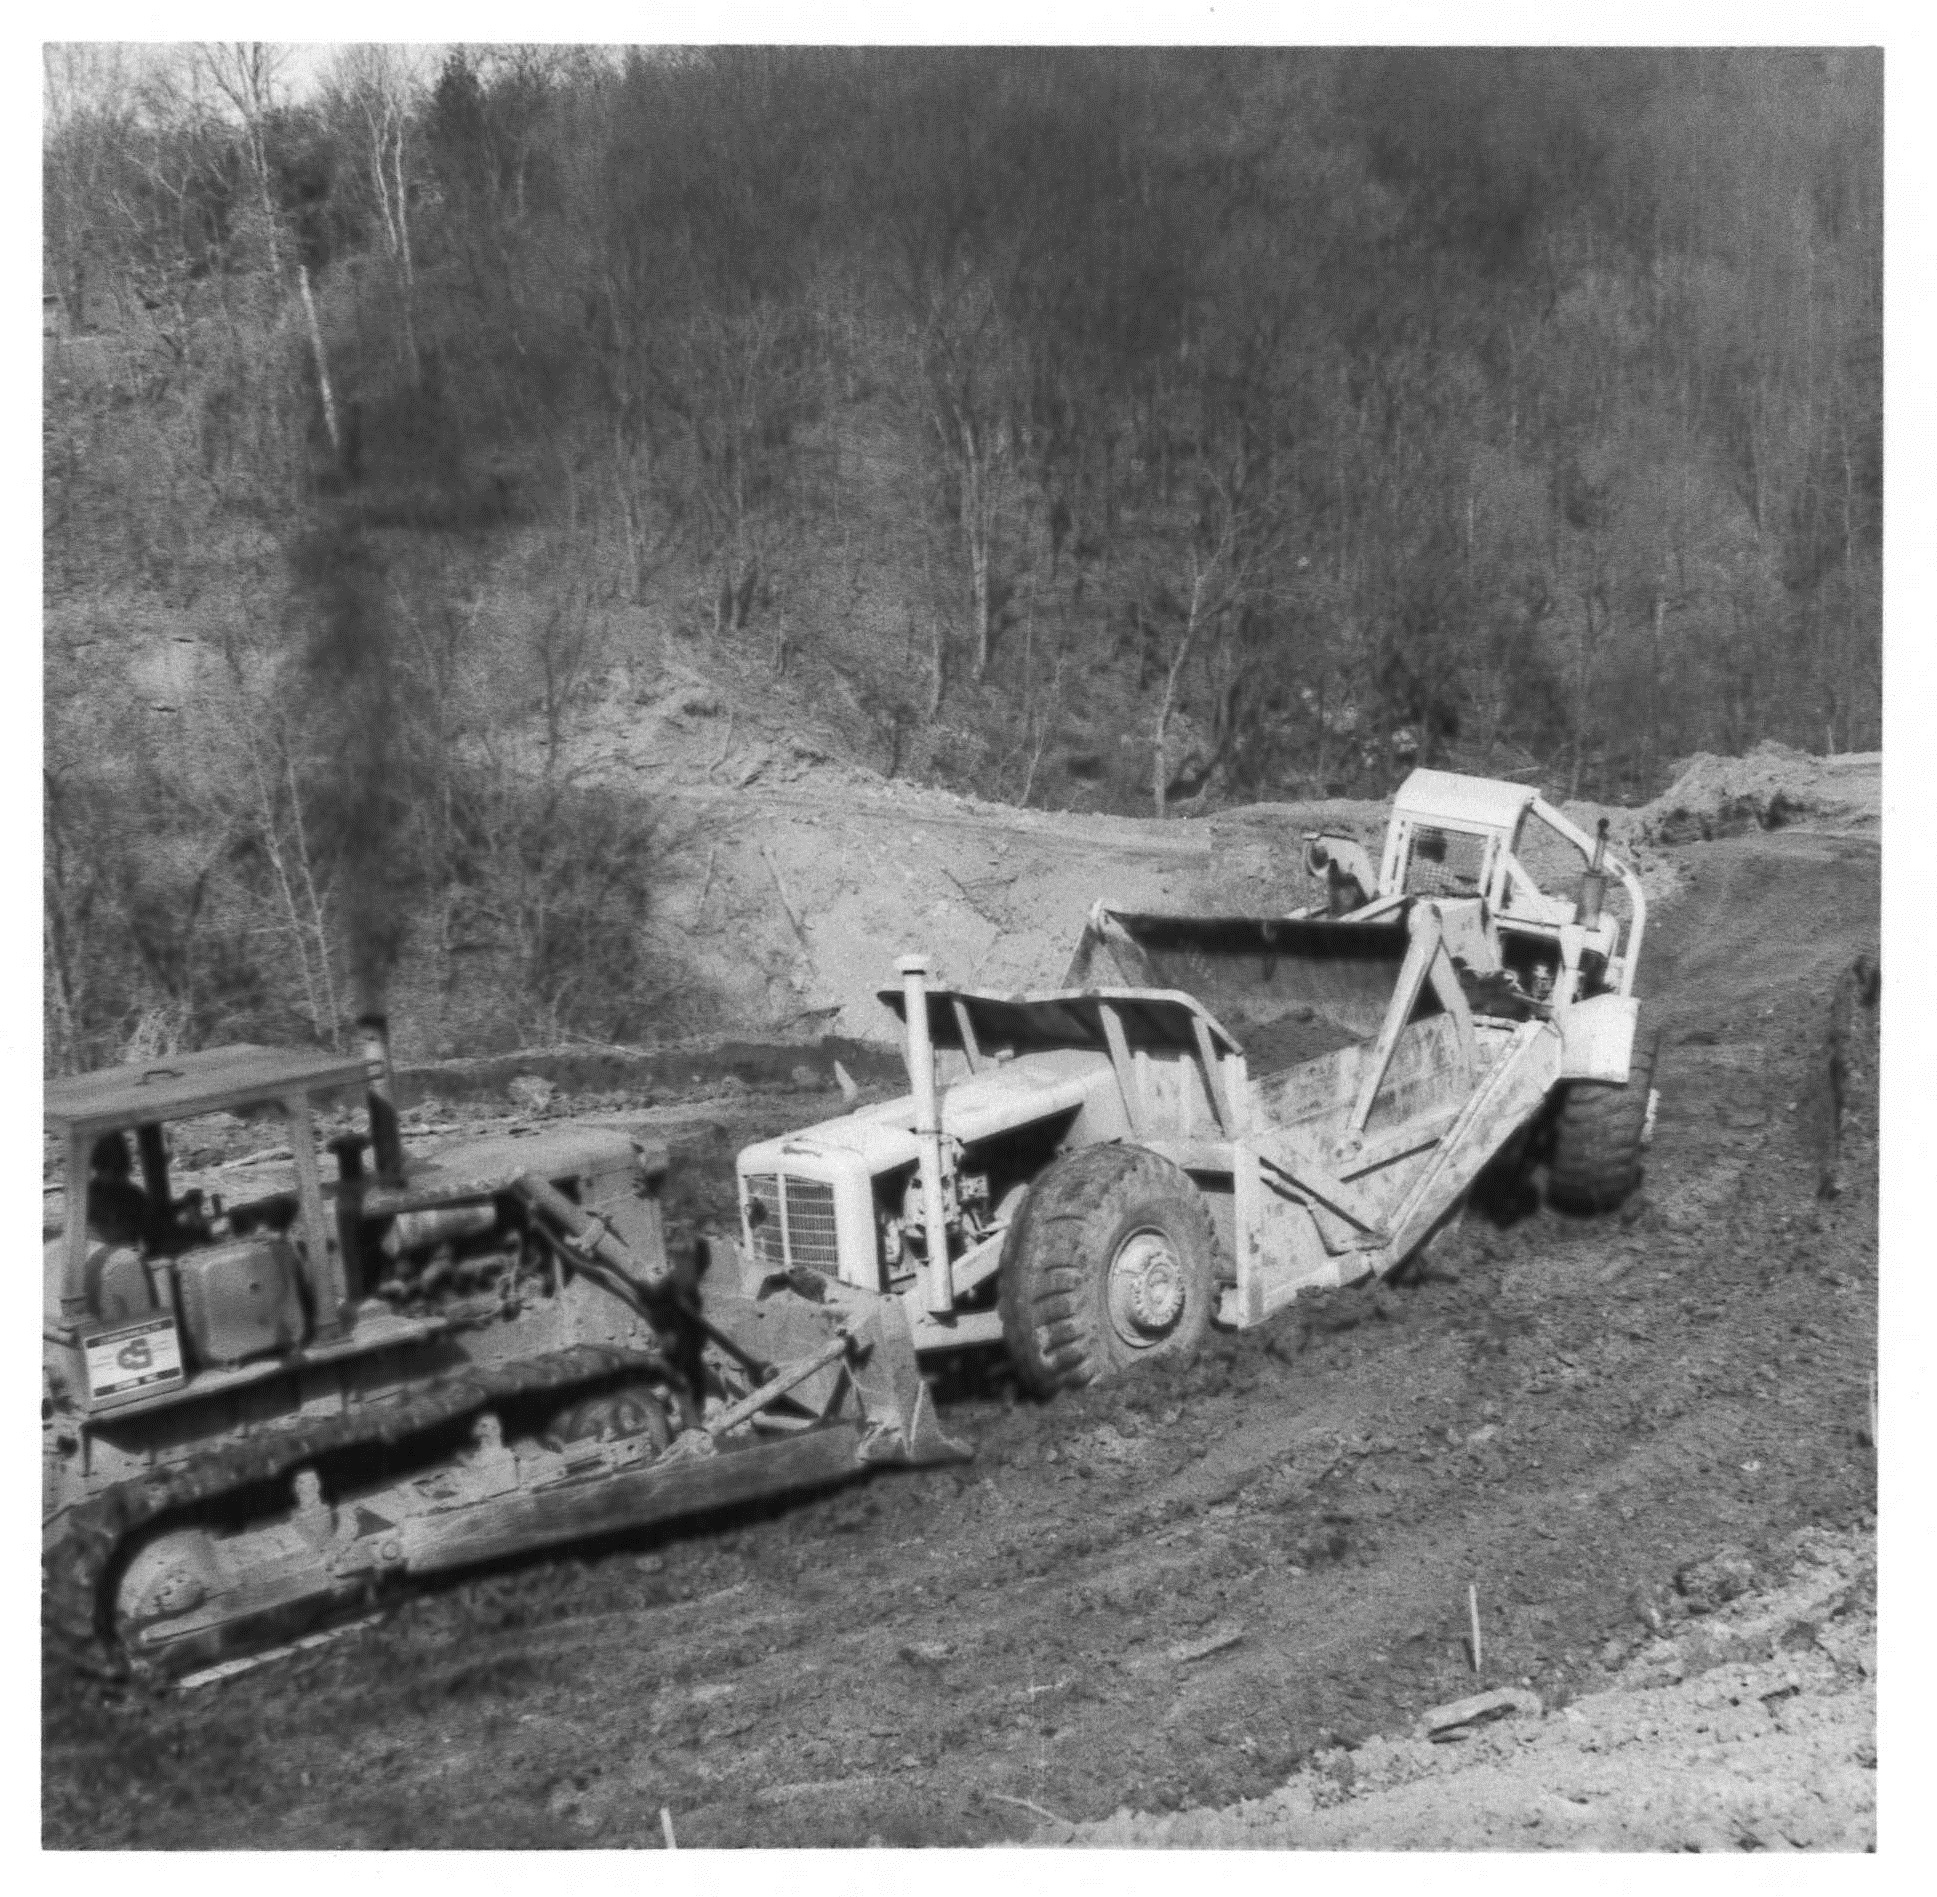 Albert promoted a Rural Abandoned Mine Project (R.A.M.P.) on the Meadowcroft property to regrade a sagging section of hillside that was threatening Meadowcroft Road. Albert Miller Papers and Photographs, MSS 1095, Meadowcroft Rockshelter and Historic Village.